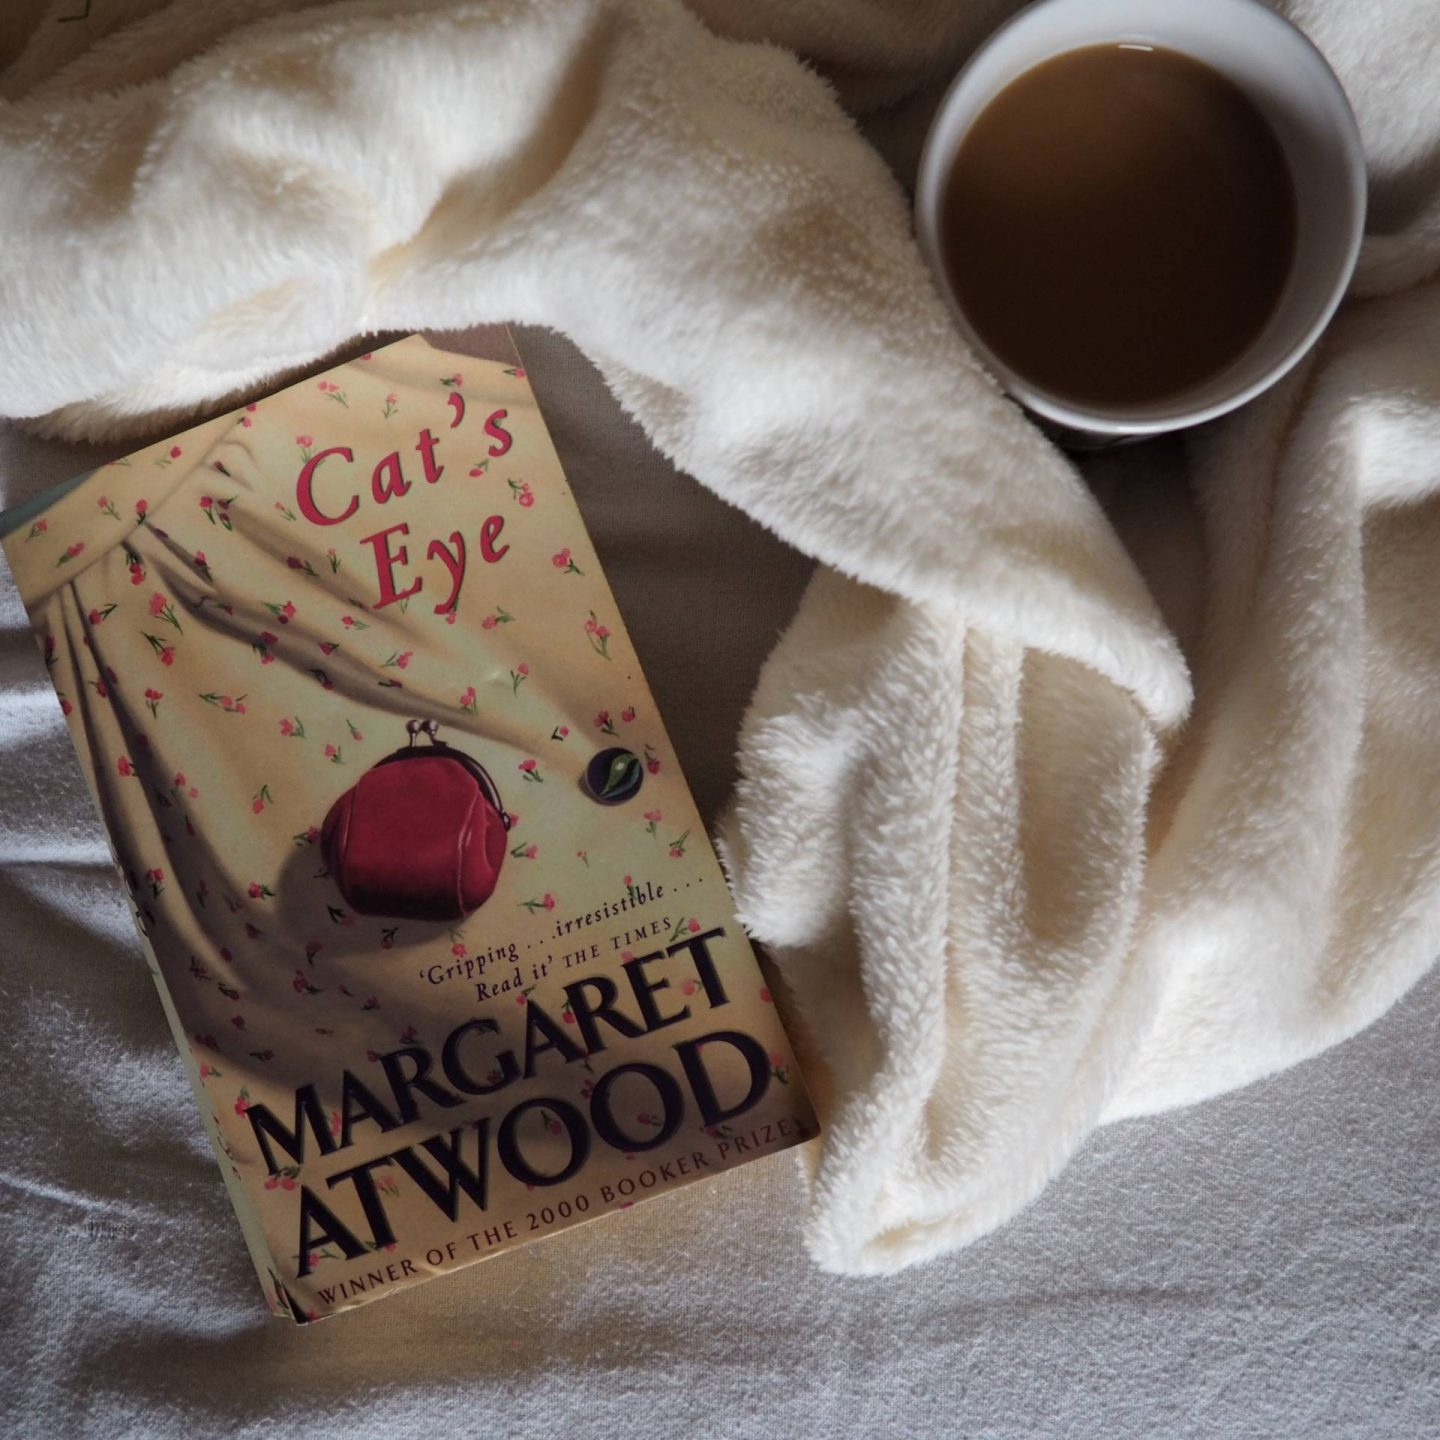 Book Review: Cat's Eye by Margaret Atwood